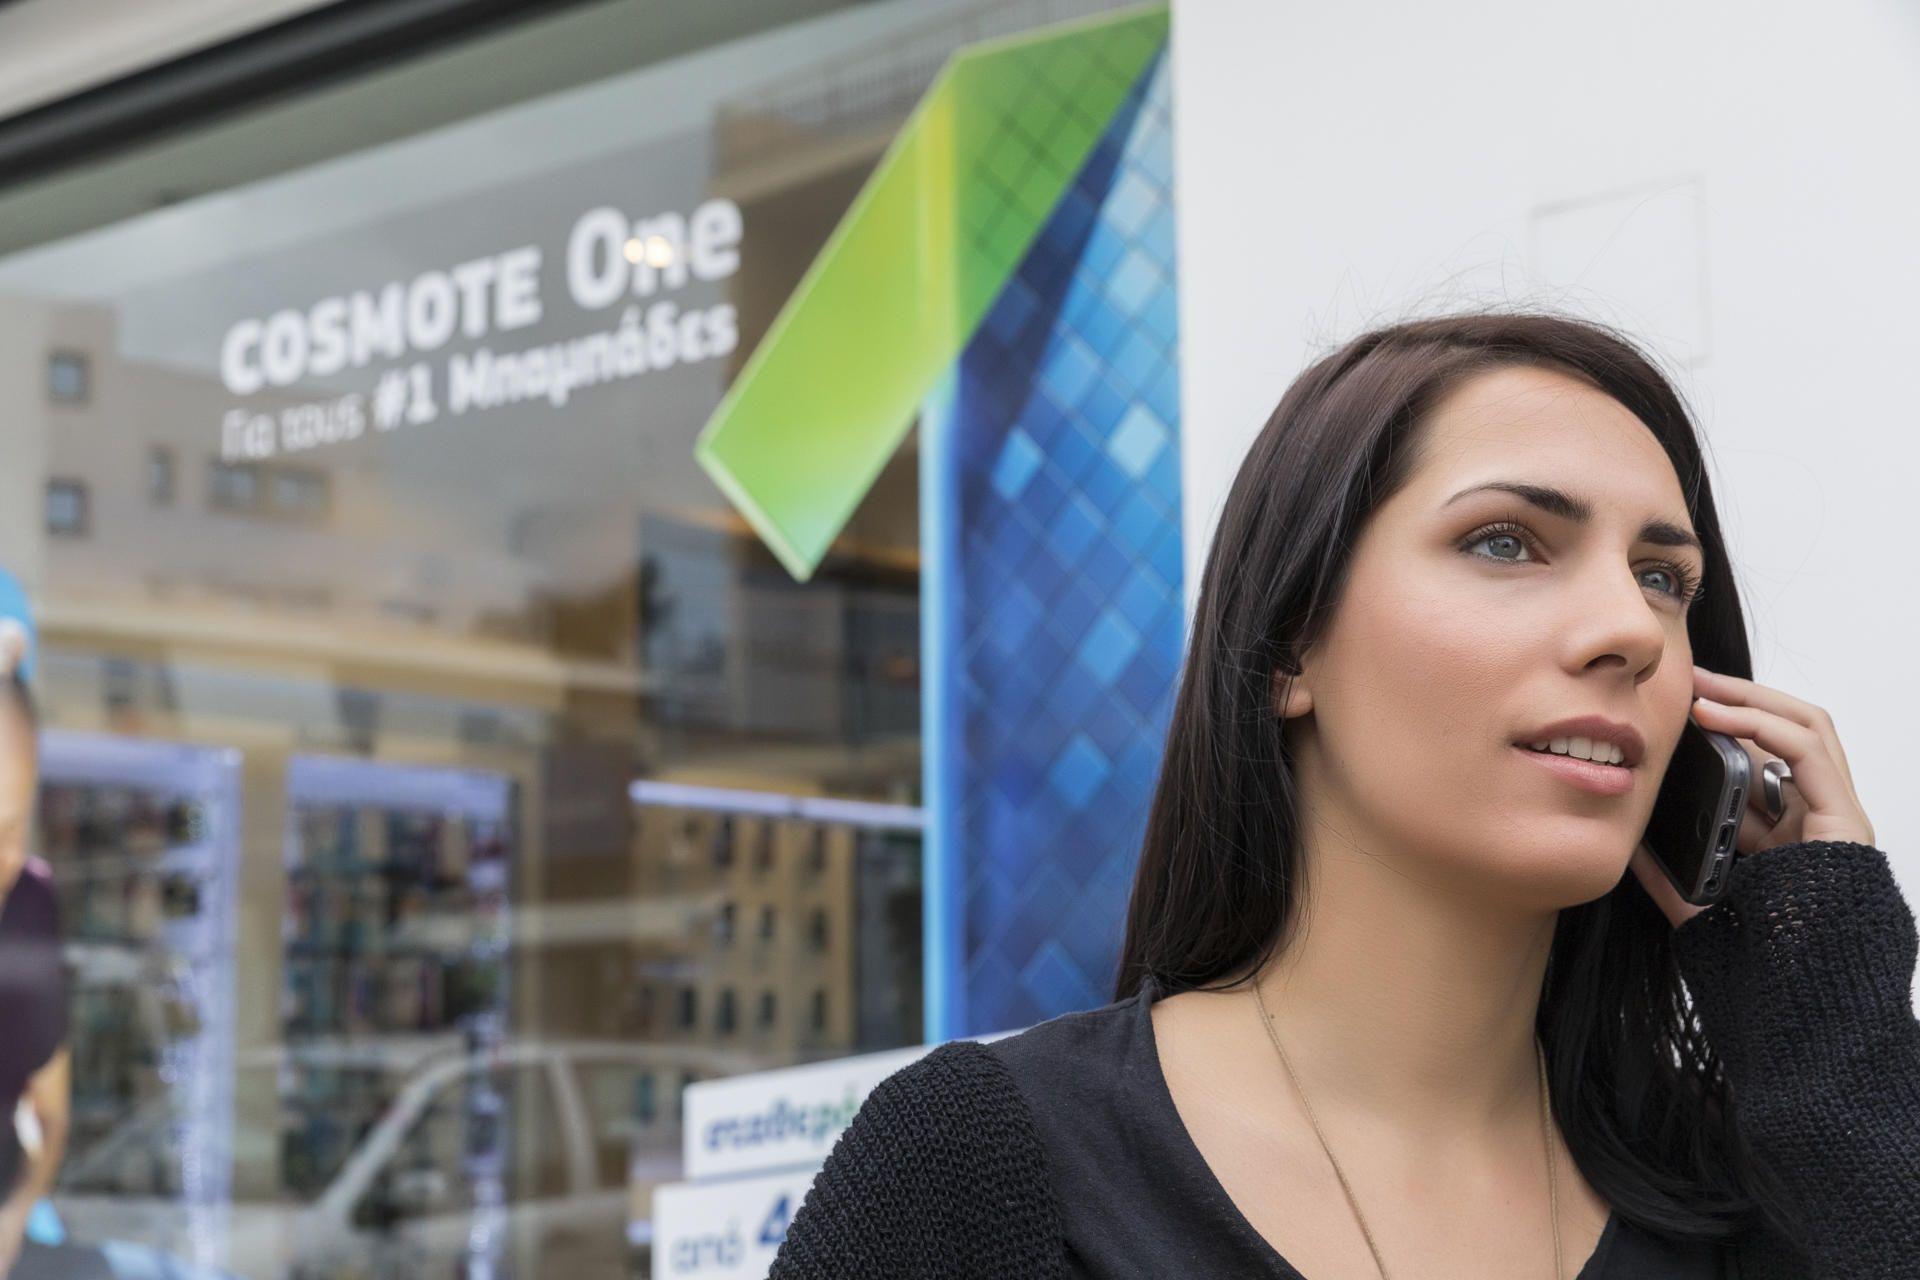 COSMOTE-Shops